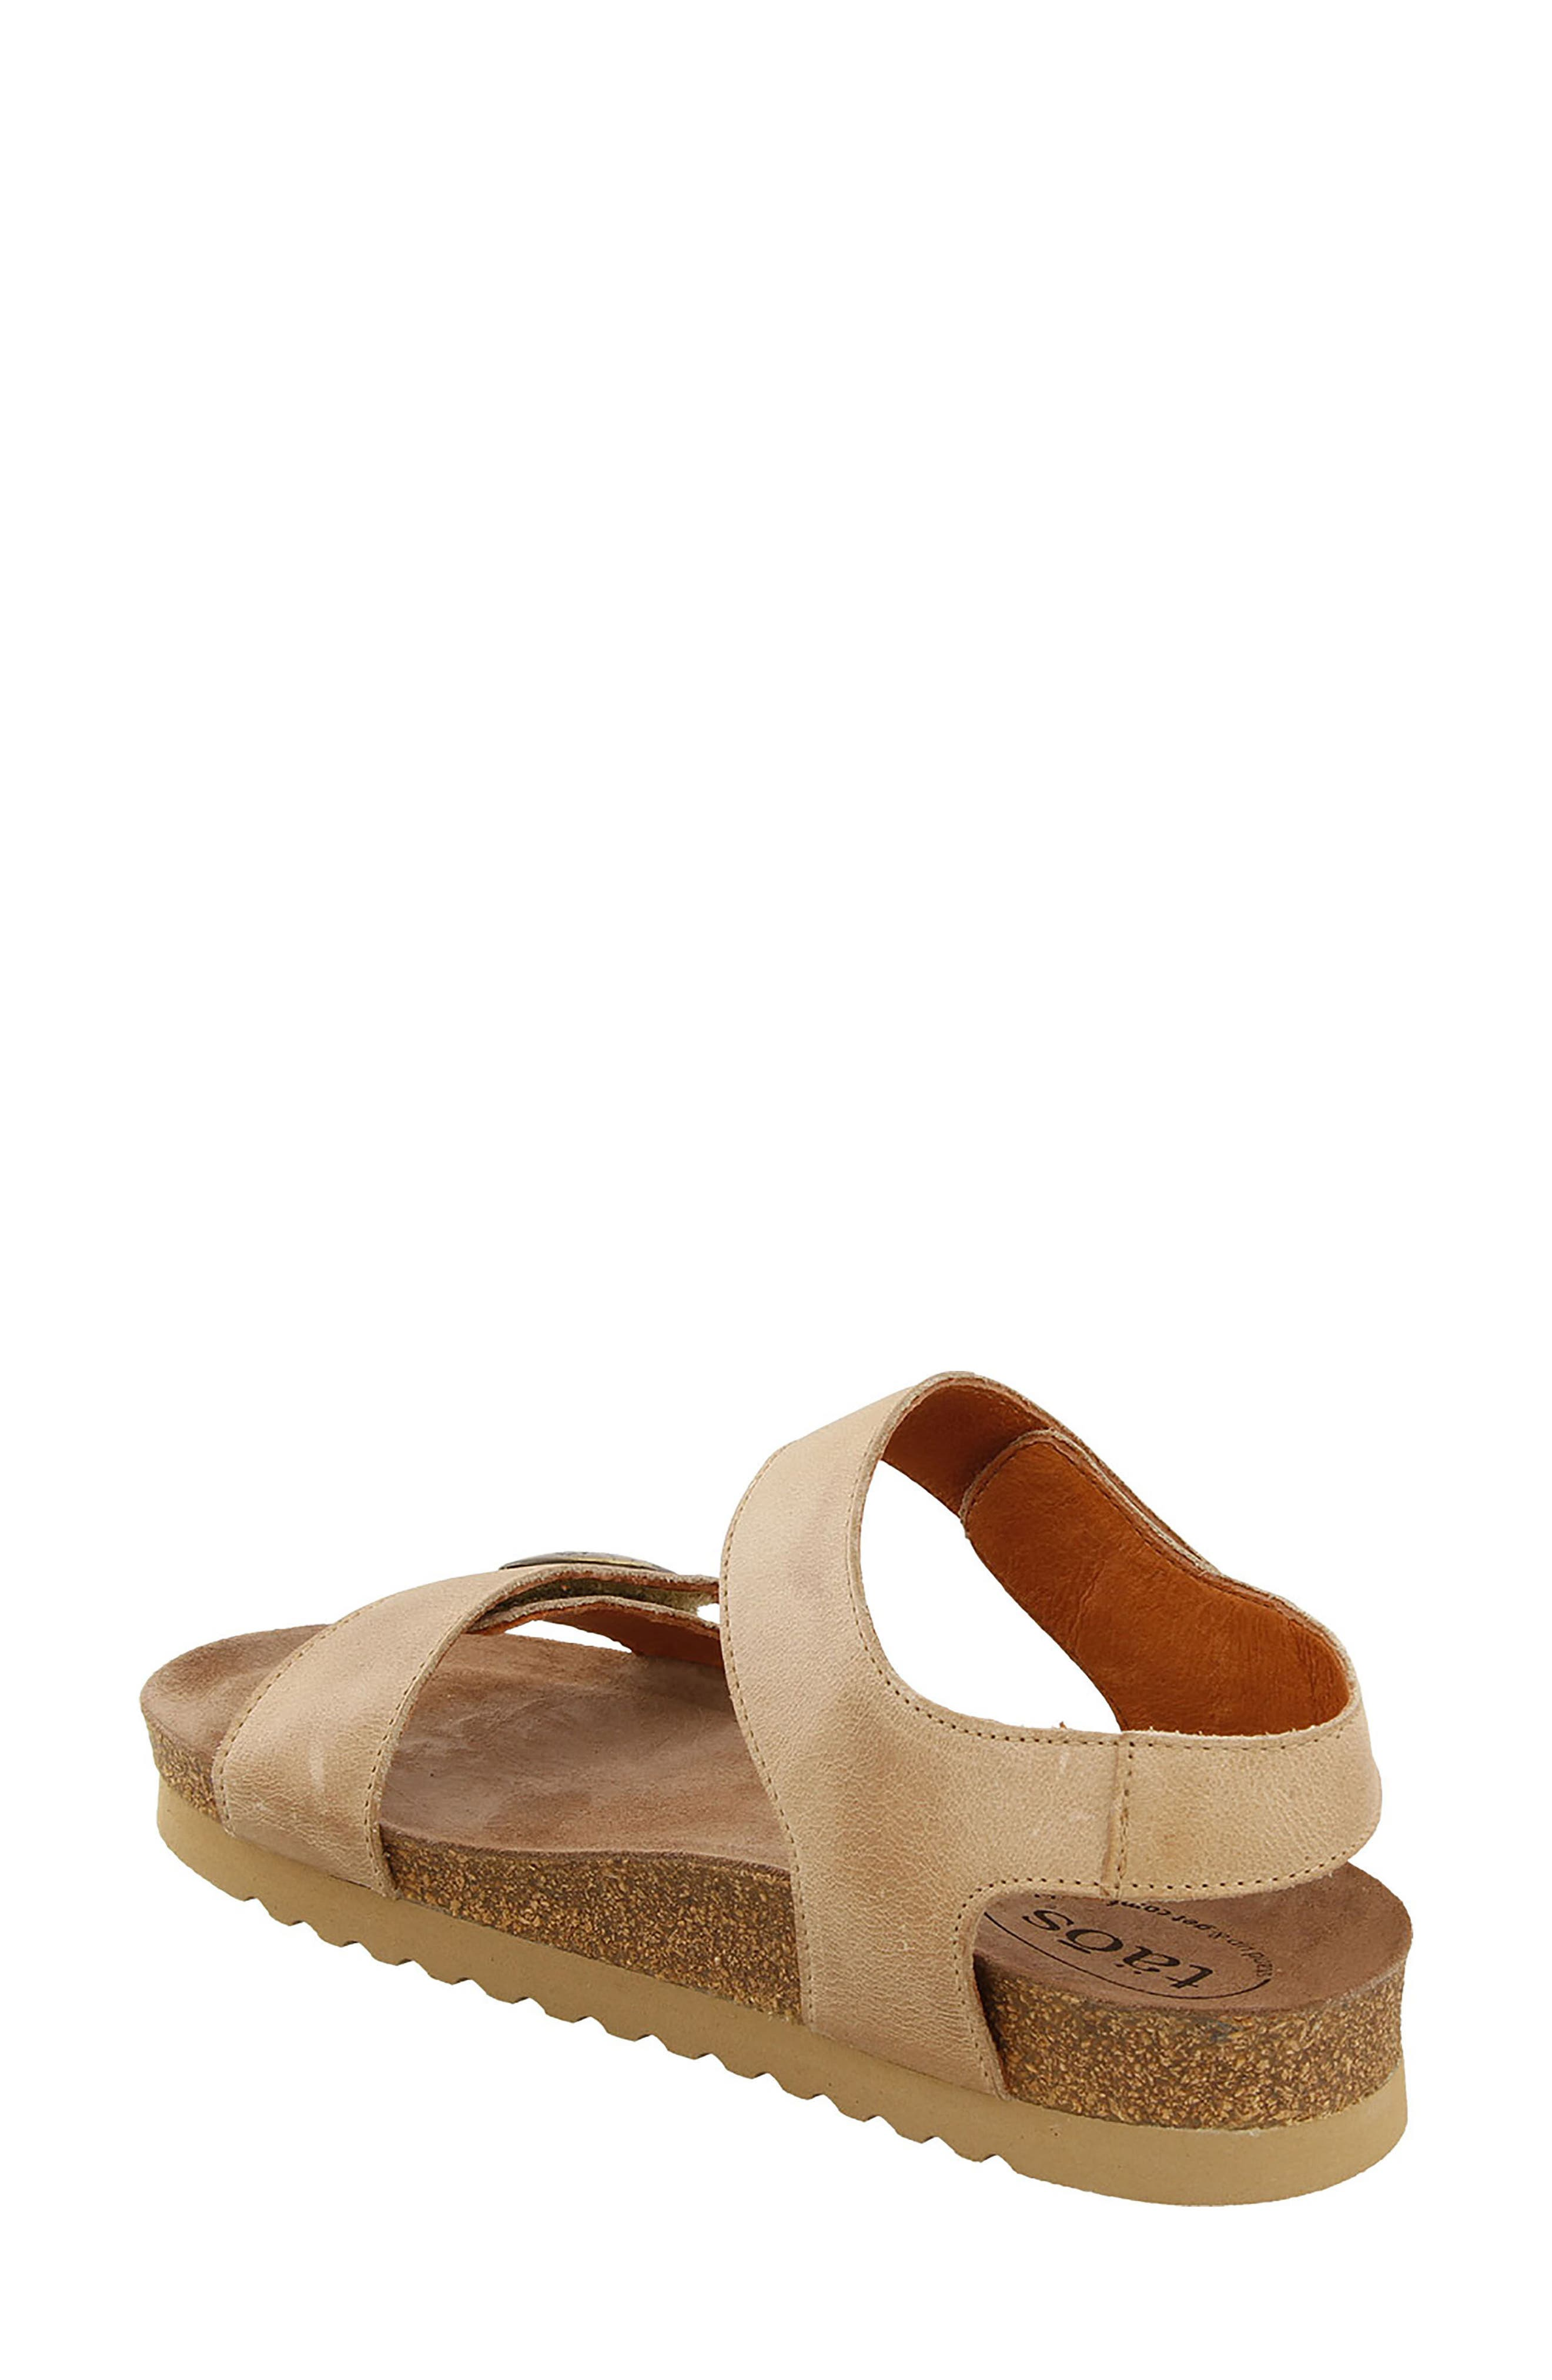 Luckie Sandal,                             Alternate thumbnail 2, color,                             Taupe Leather